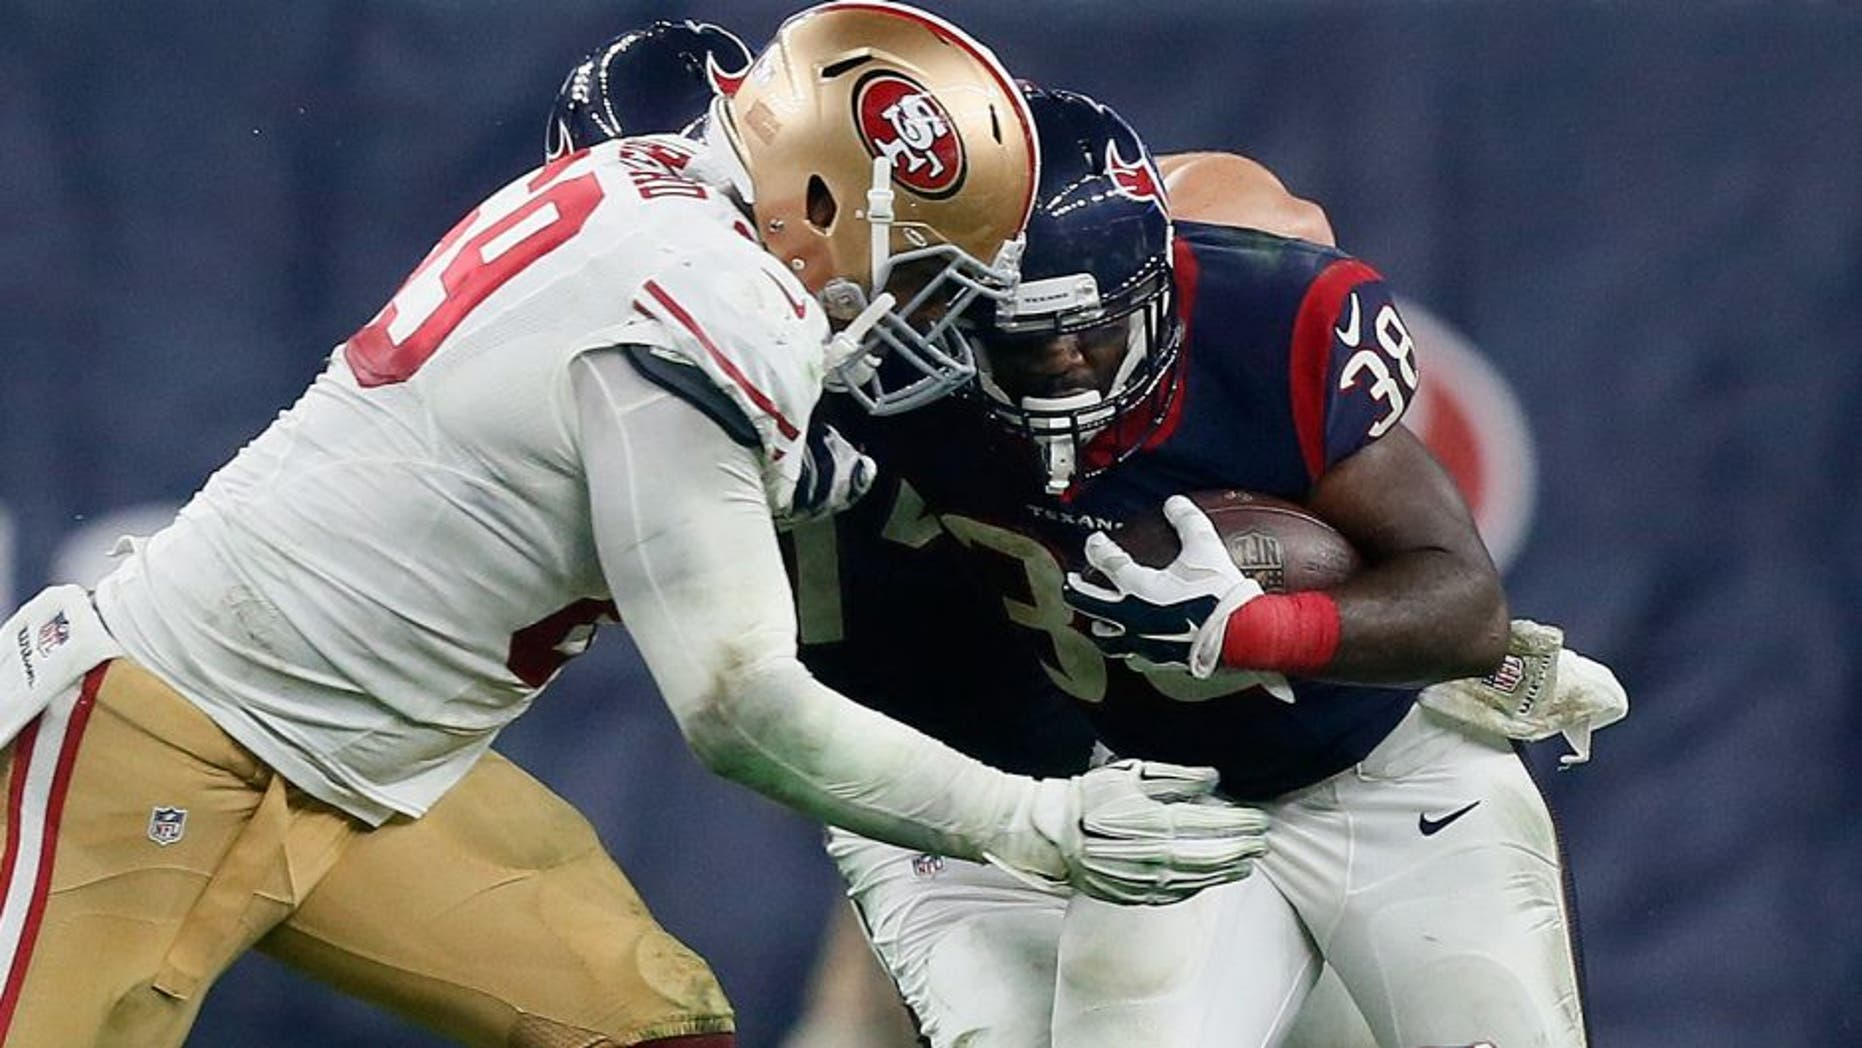 HOUSTON, TX - AUGUST 15: Kenny Hilliard #38 of the Houston Texans is tackled by Arik Armstead #69 of the San Francisco 49ers at Reliant Arena at Reliant Park on August 15, 2015 in Houston, Texas. (Photo by Bob Levey/Getty Images)